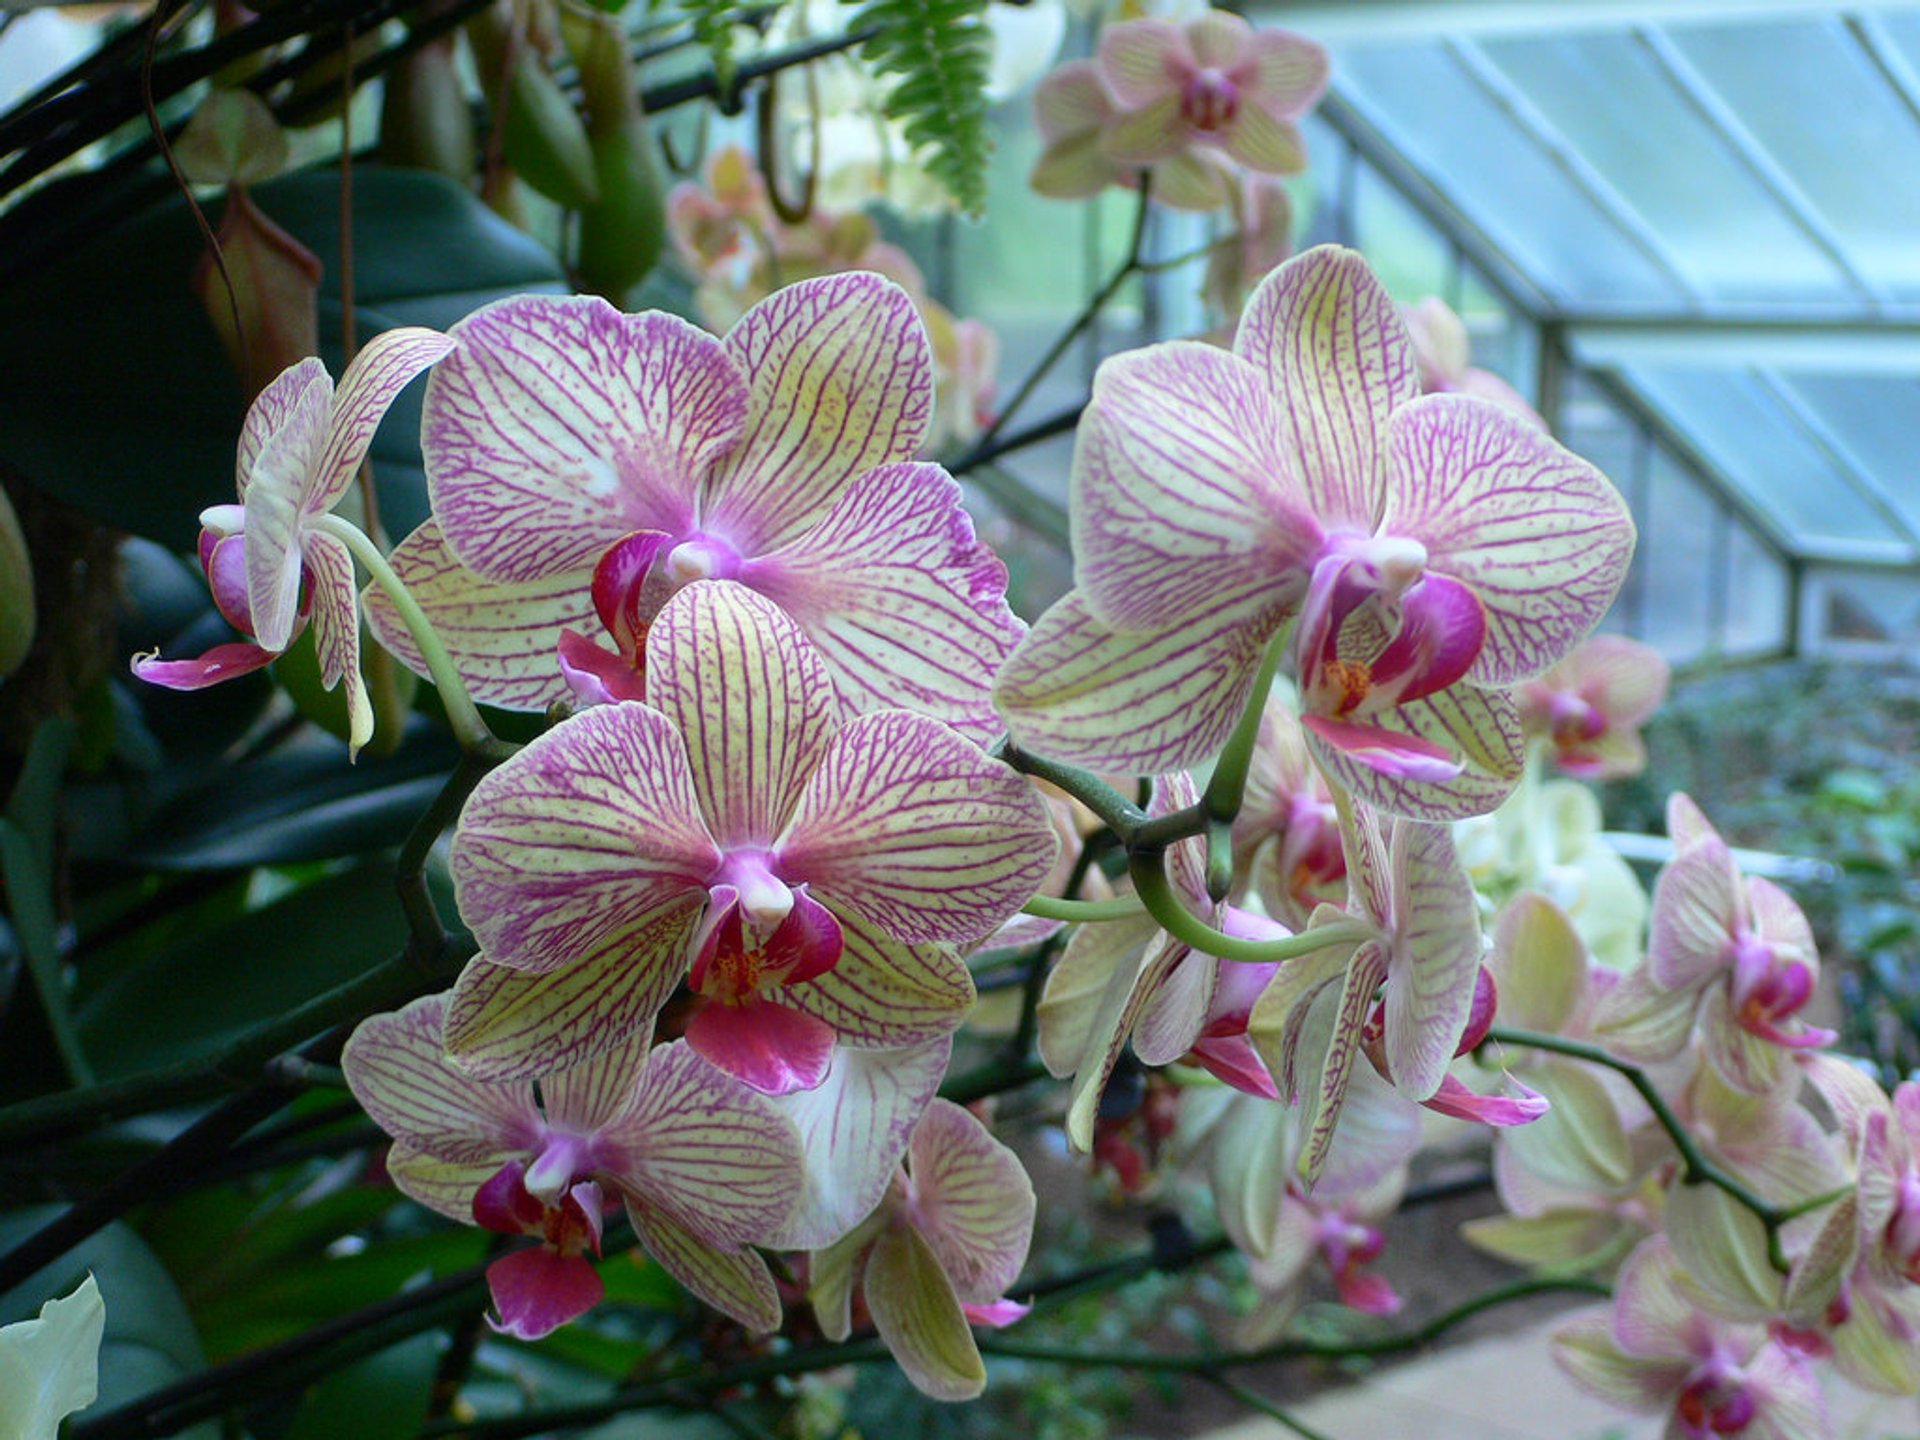 Best time to see Orchids Festival at Kew Gardens in London 2020